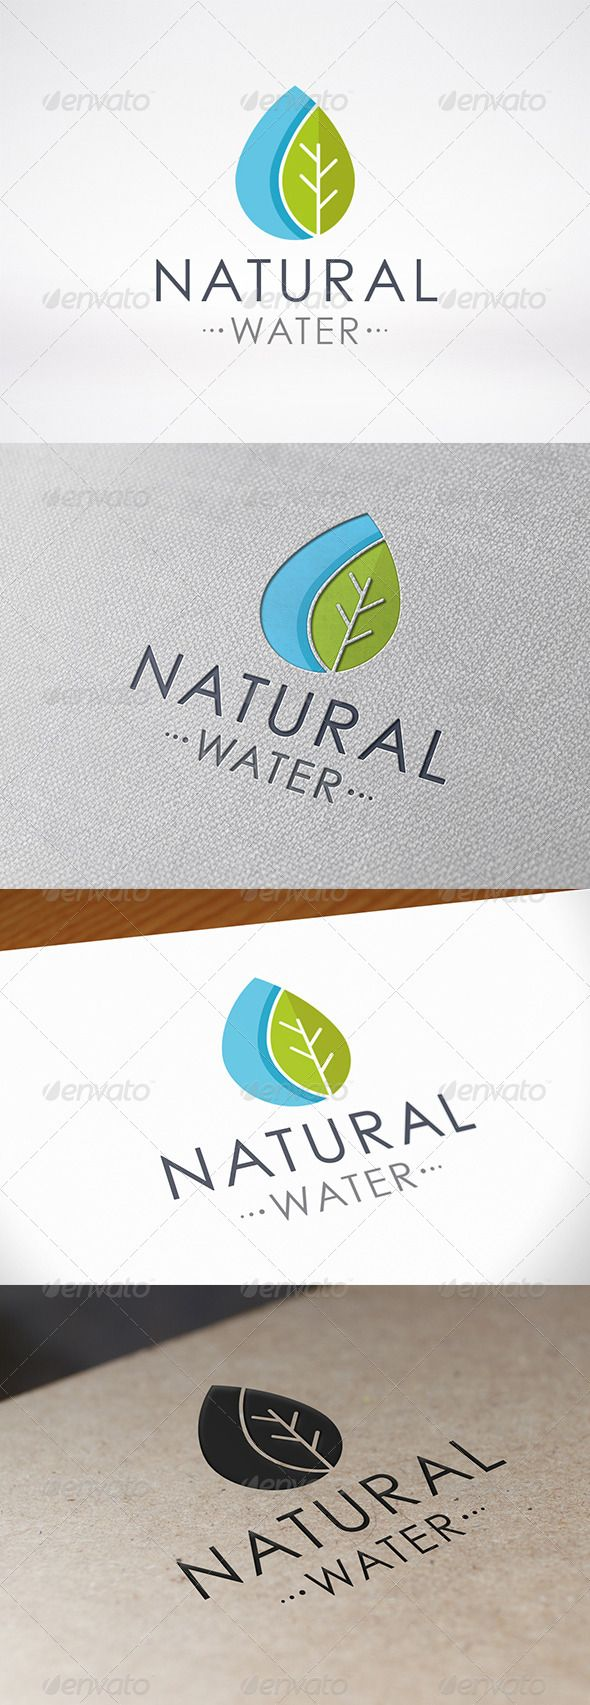 Green Water - Logo Design Template Vector #logotype Download it here: http://graphicriver.net/item/green-water-logo-template/7278340?s_rank=1017?ref=nexion